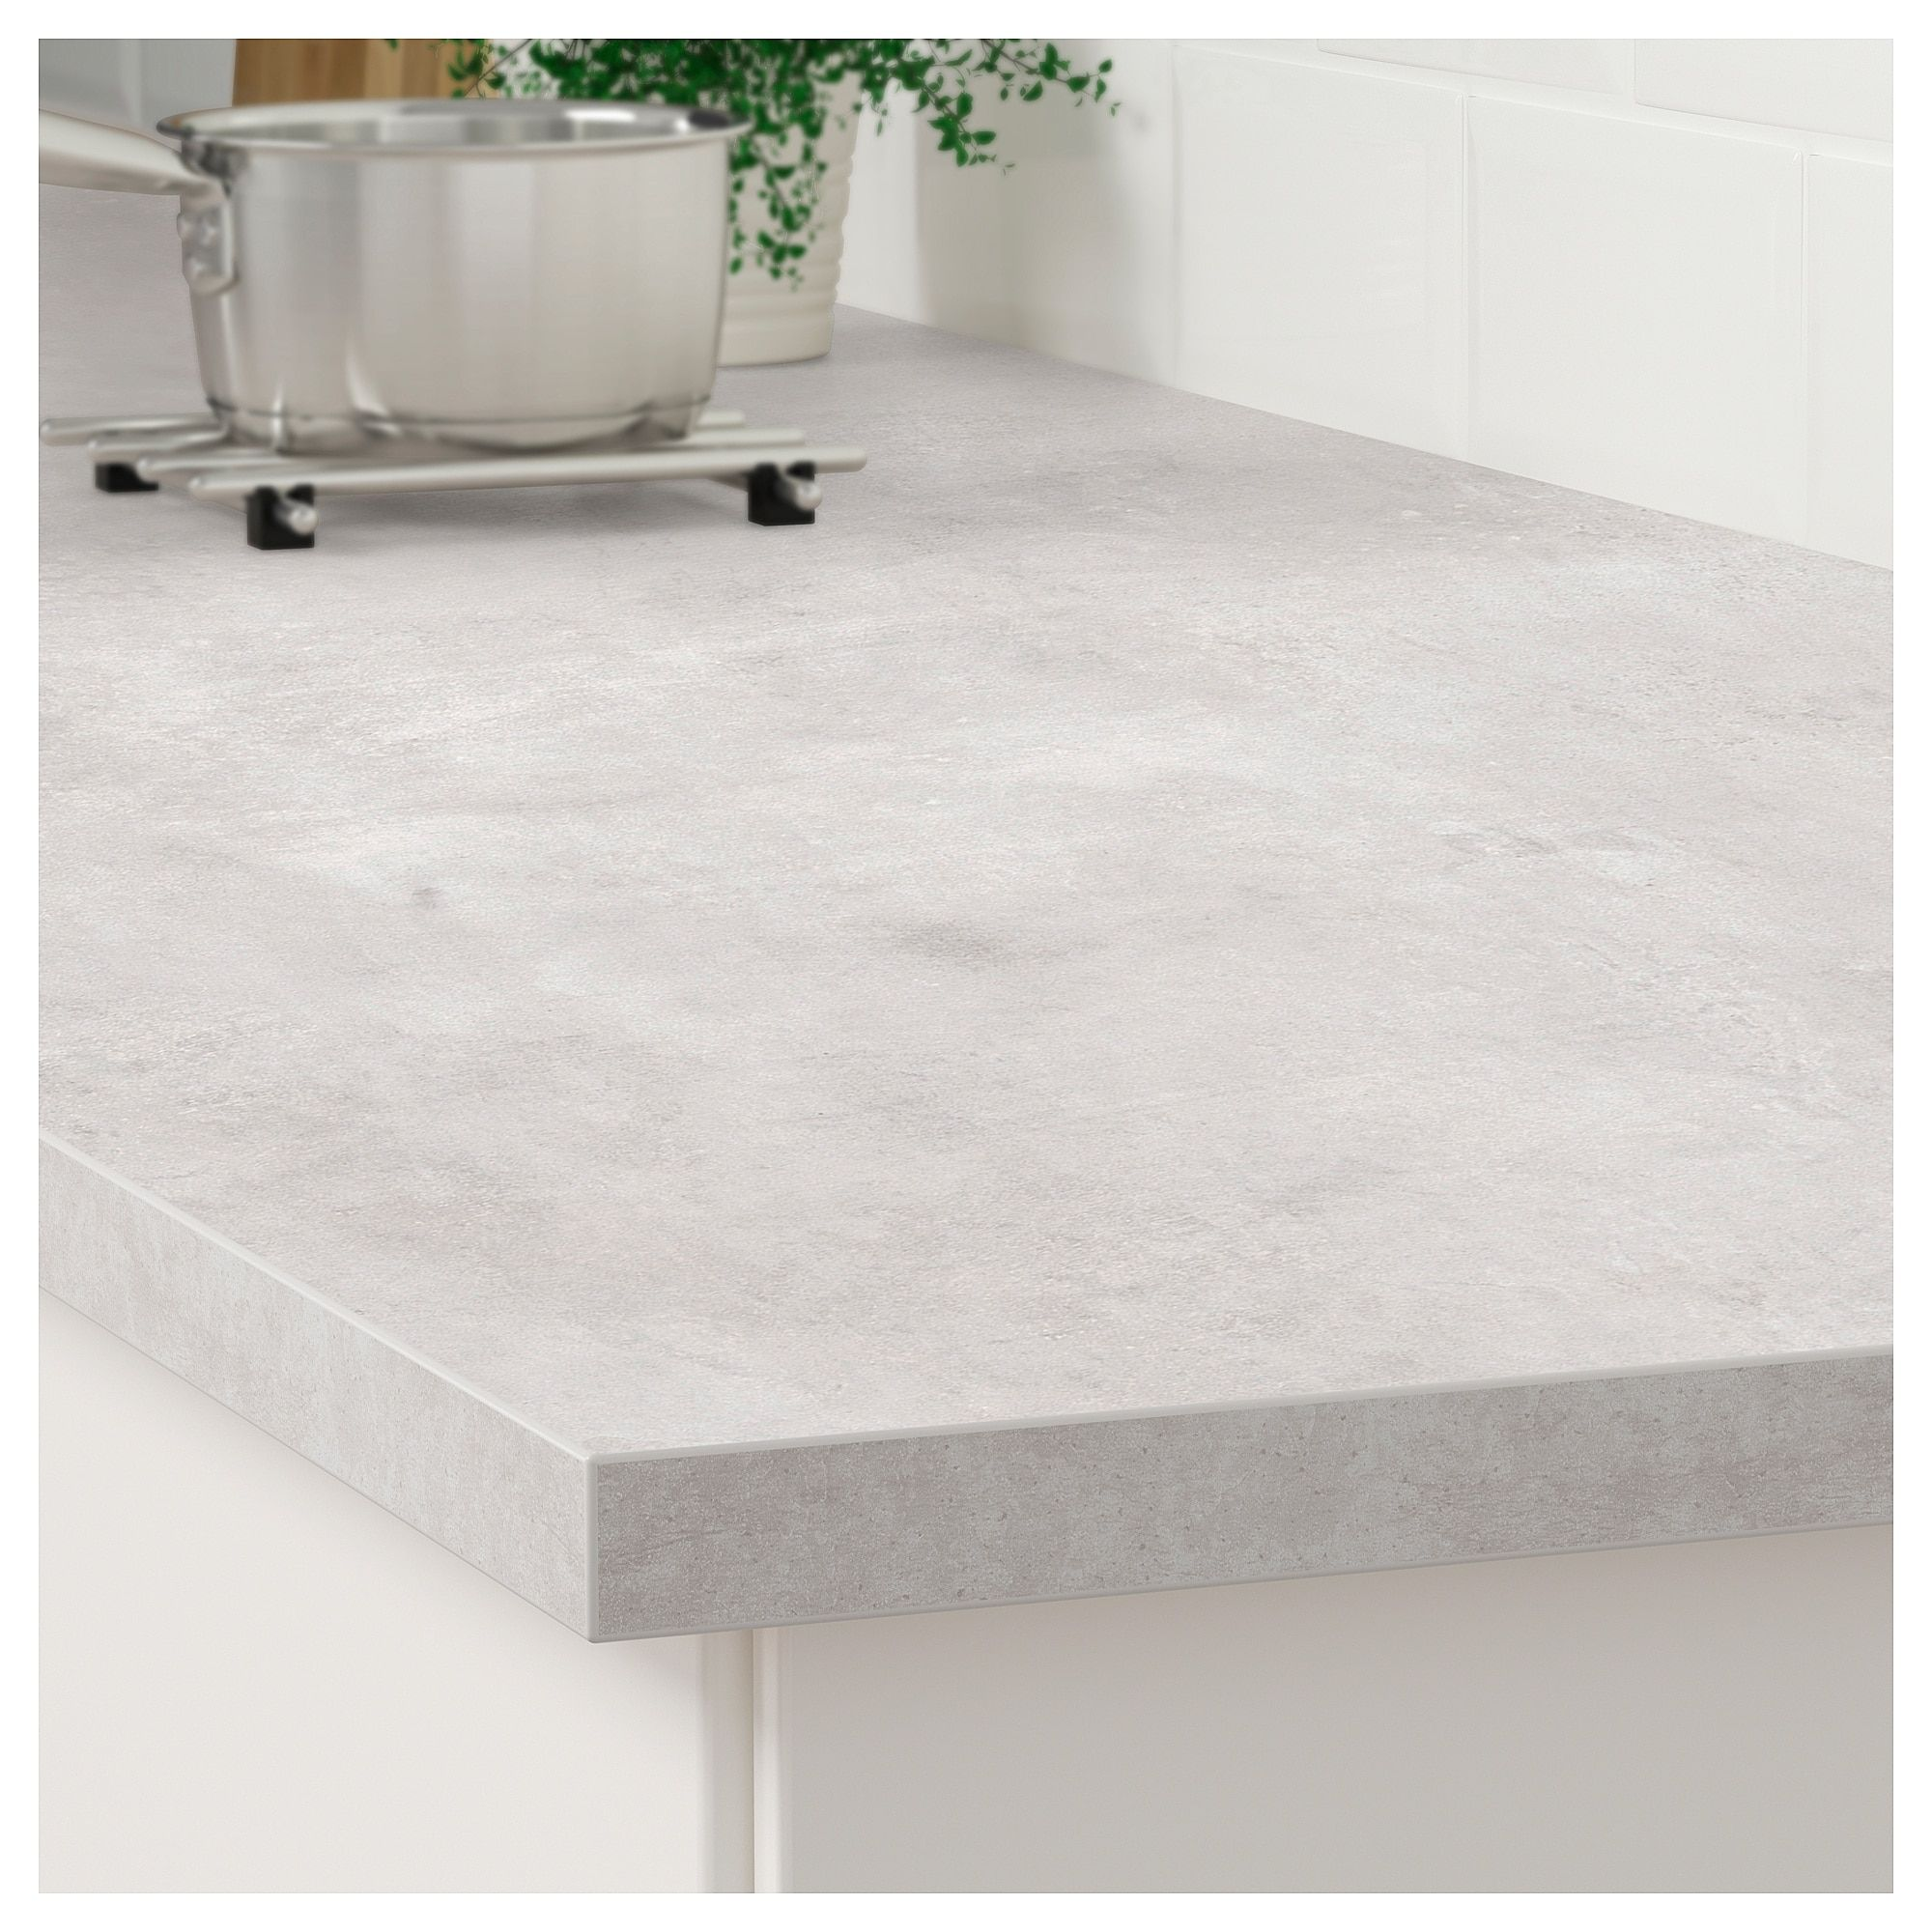 Ekbacken Countertop Light Gray Concrete Effect Laminate 98x1 1